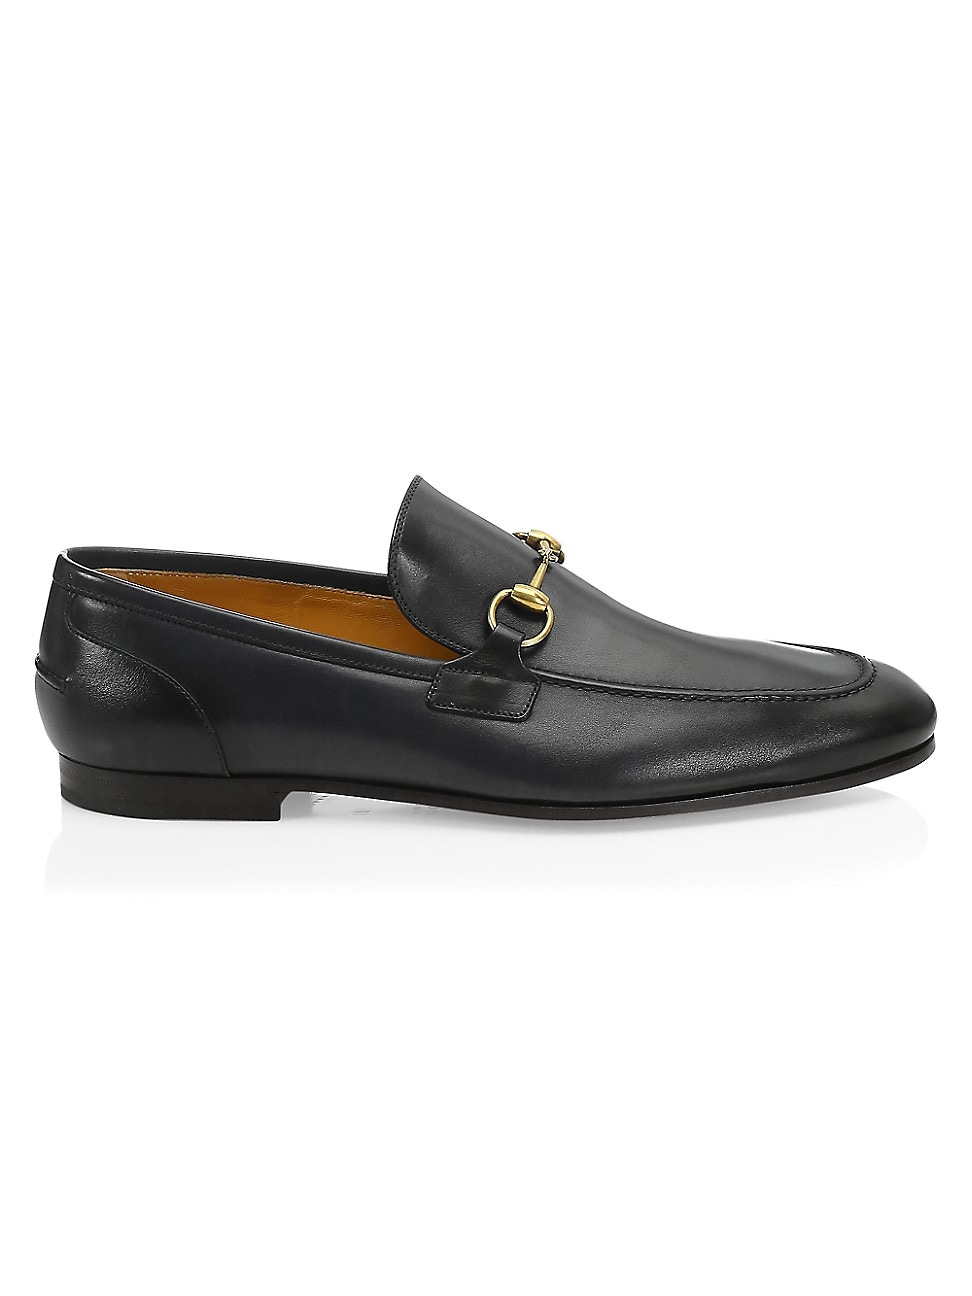 Gucci MEN'S JORDAAN LEATHER LOAFERS